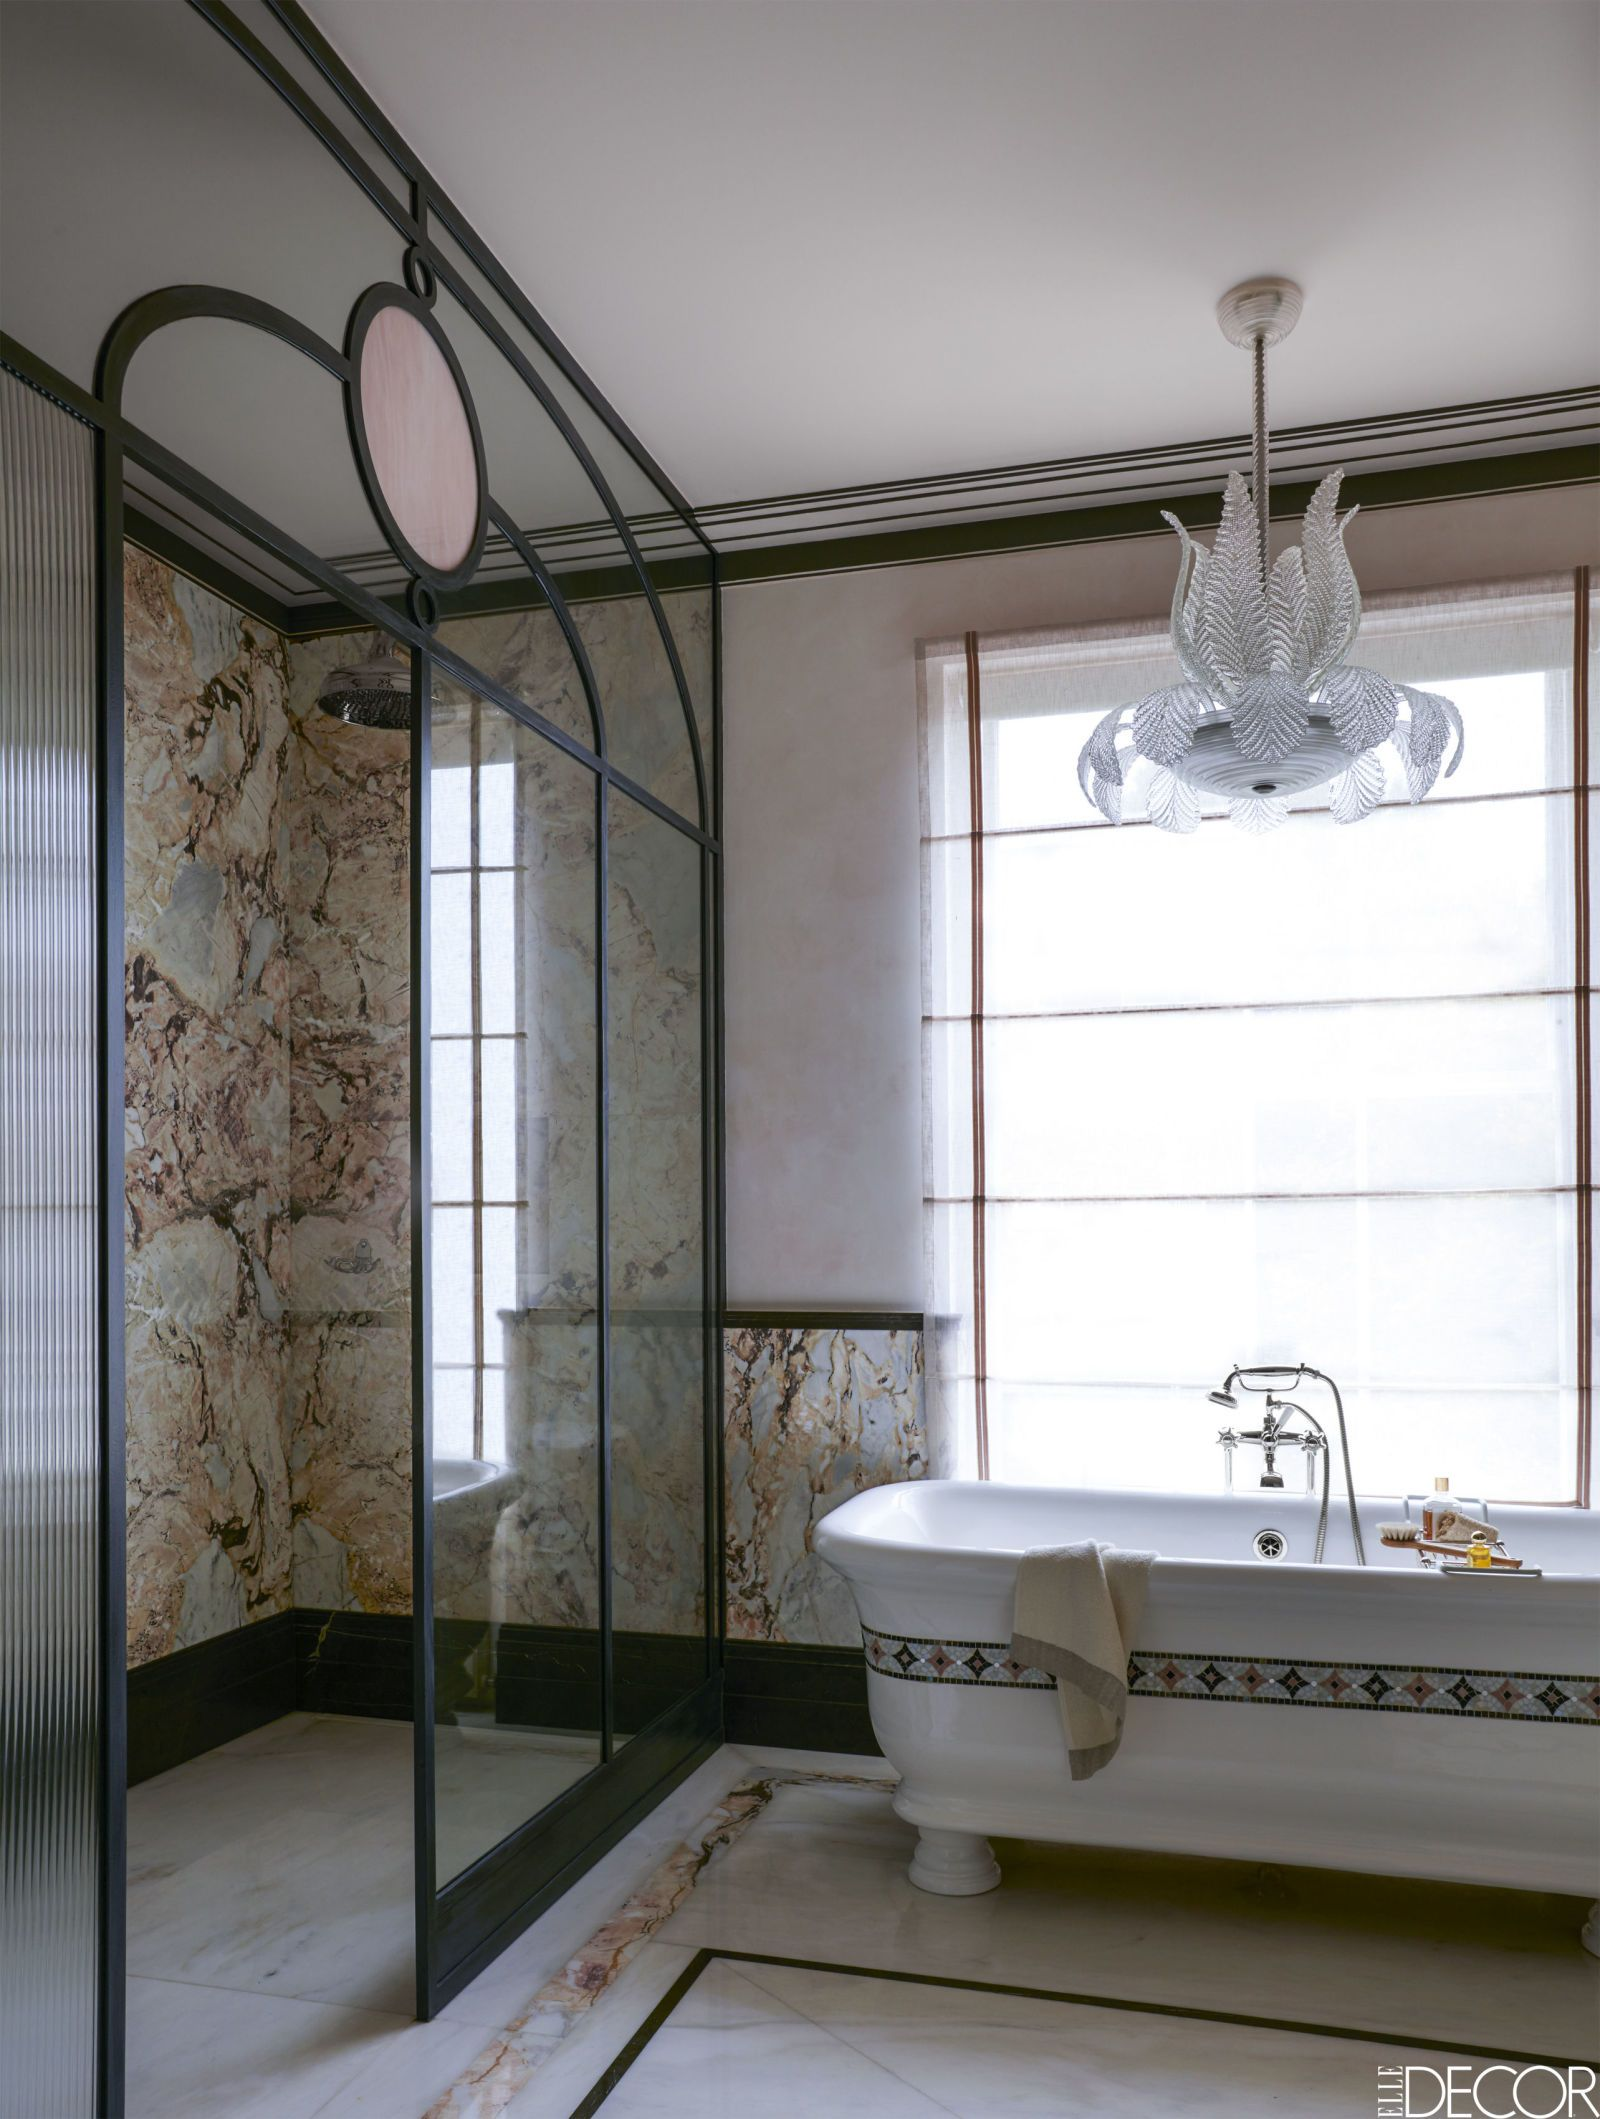 Oxydation Salle De Bain ~ this london townhouse proves minimalism isn t always the answer charme